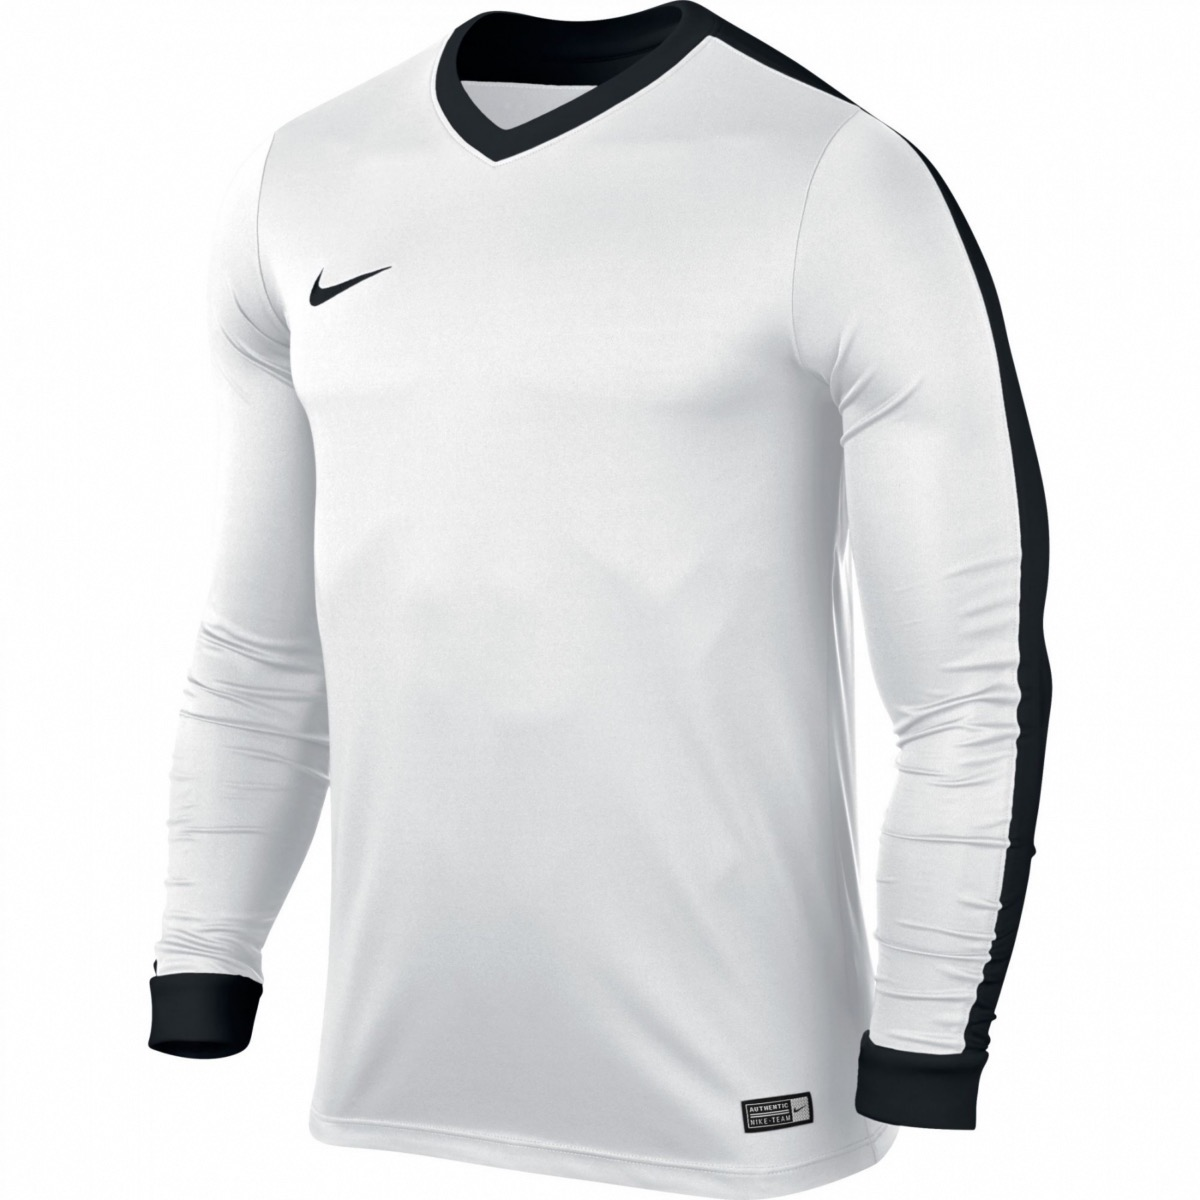 ... Maillot Nike striker IV Manches longues 725885 (adulte) ... 1119f132665f